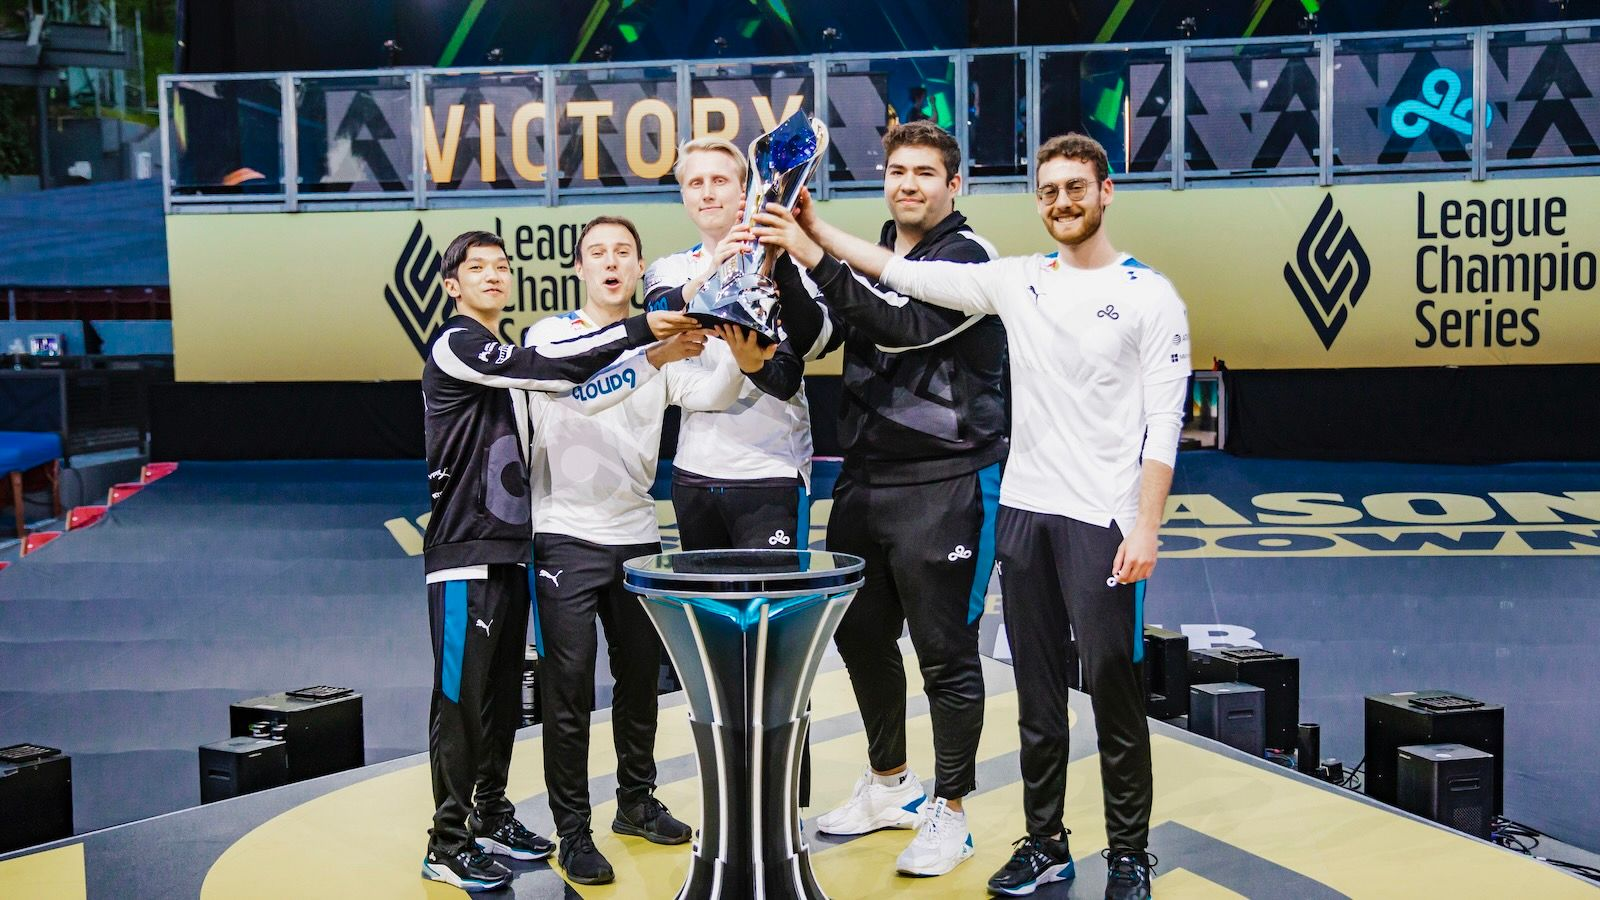 Why Cloud9's victory at the Greek Theatre was a breath of fresh air